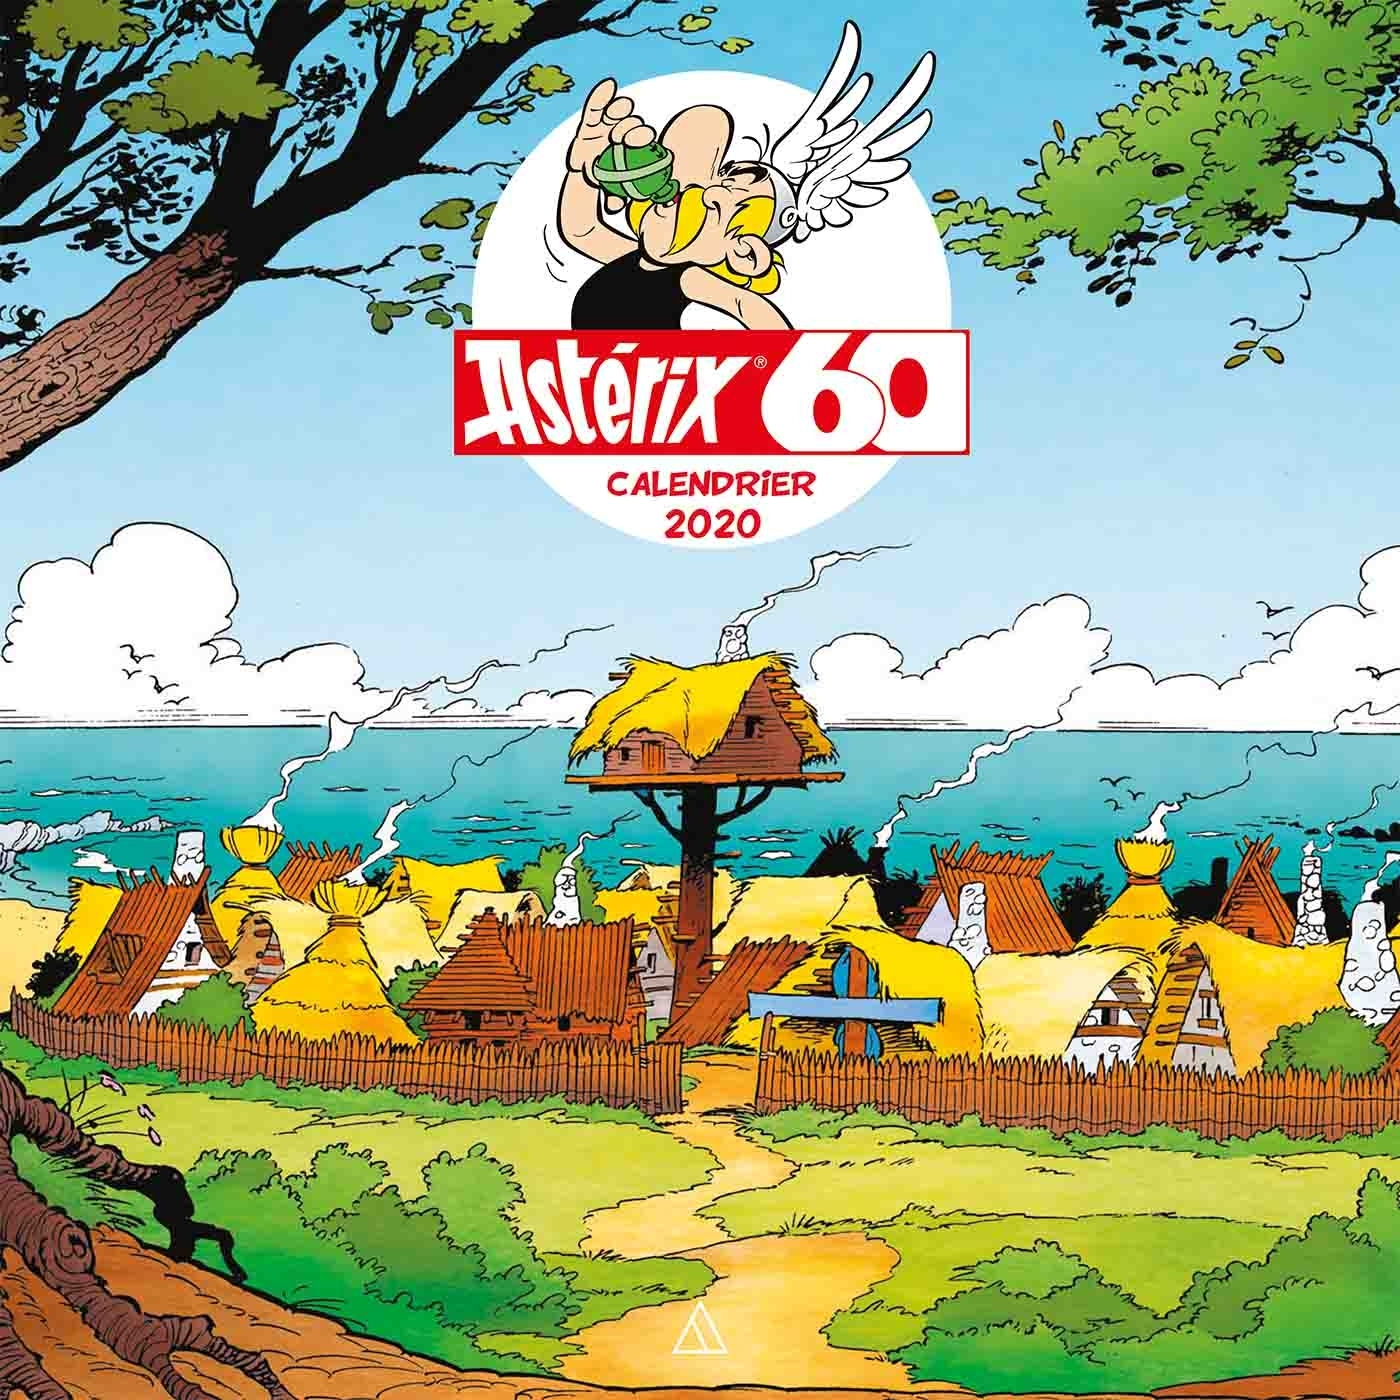 CALENDRIER MURAL - ASTERIX + STICKERS